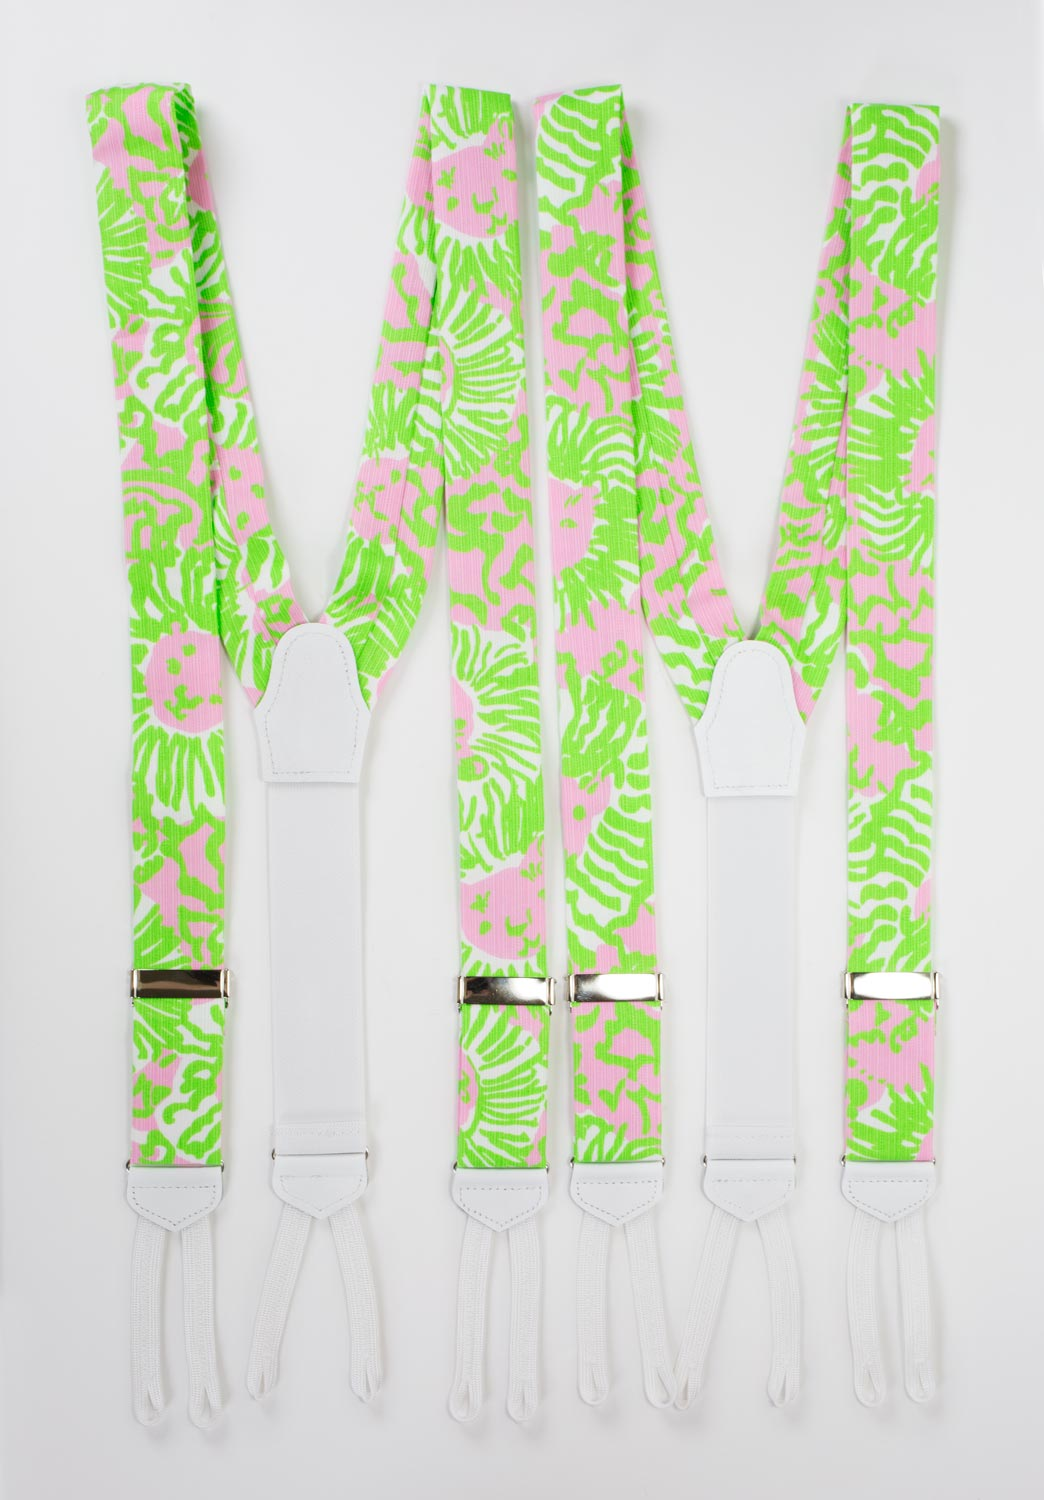 cabana pink sunrise lillly pulitzer suspenders